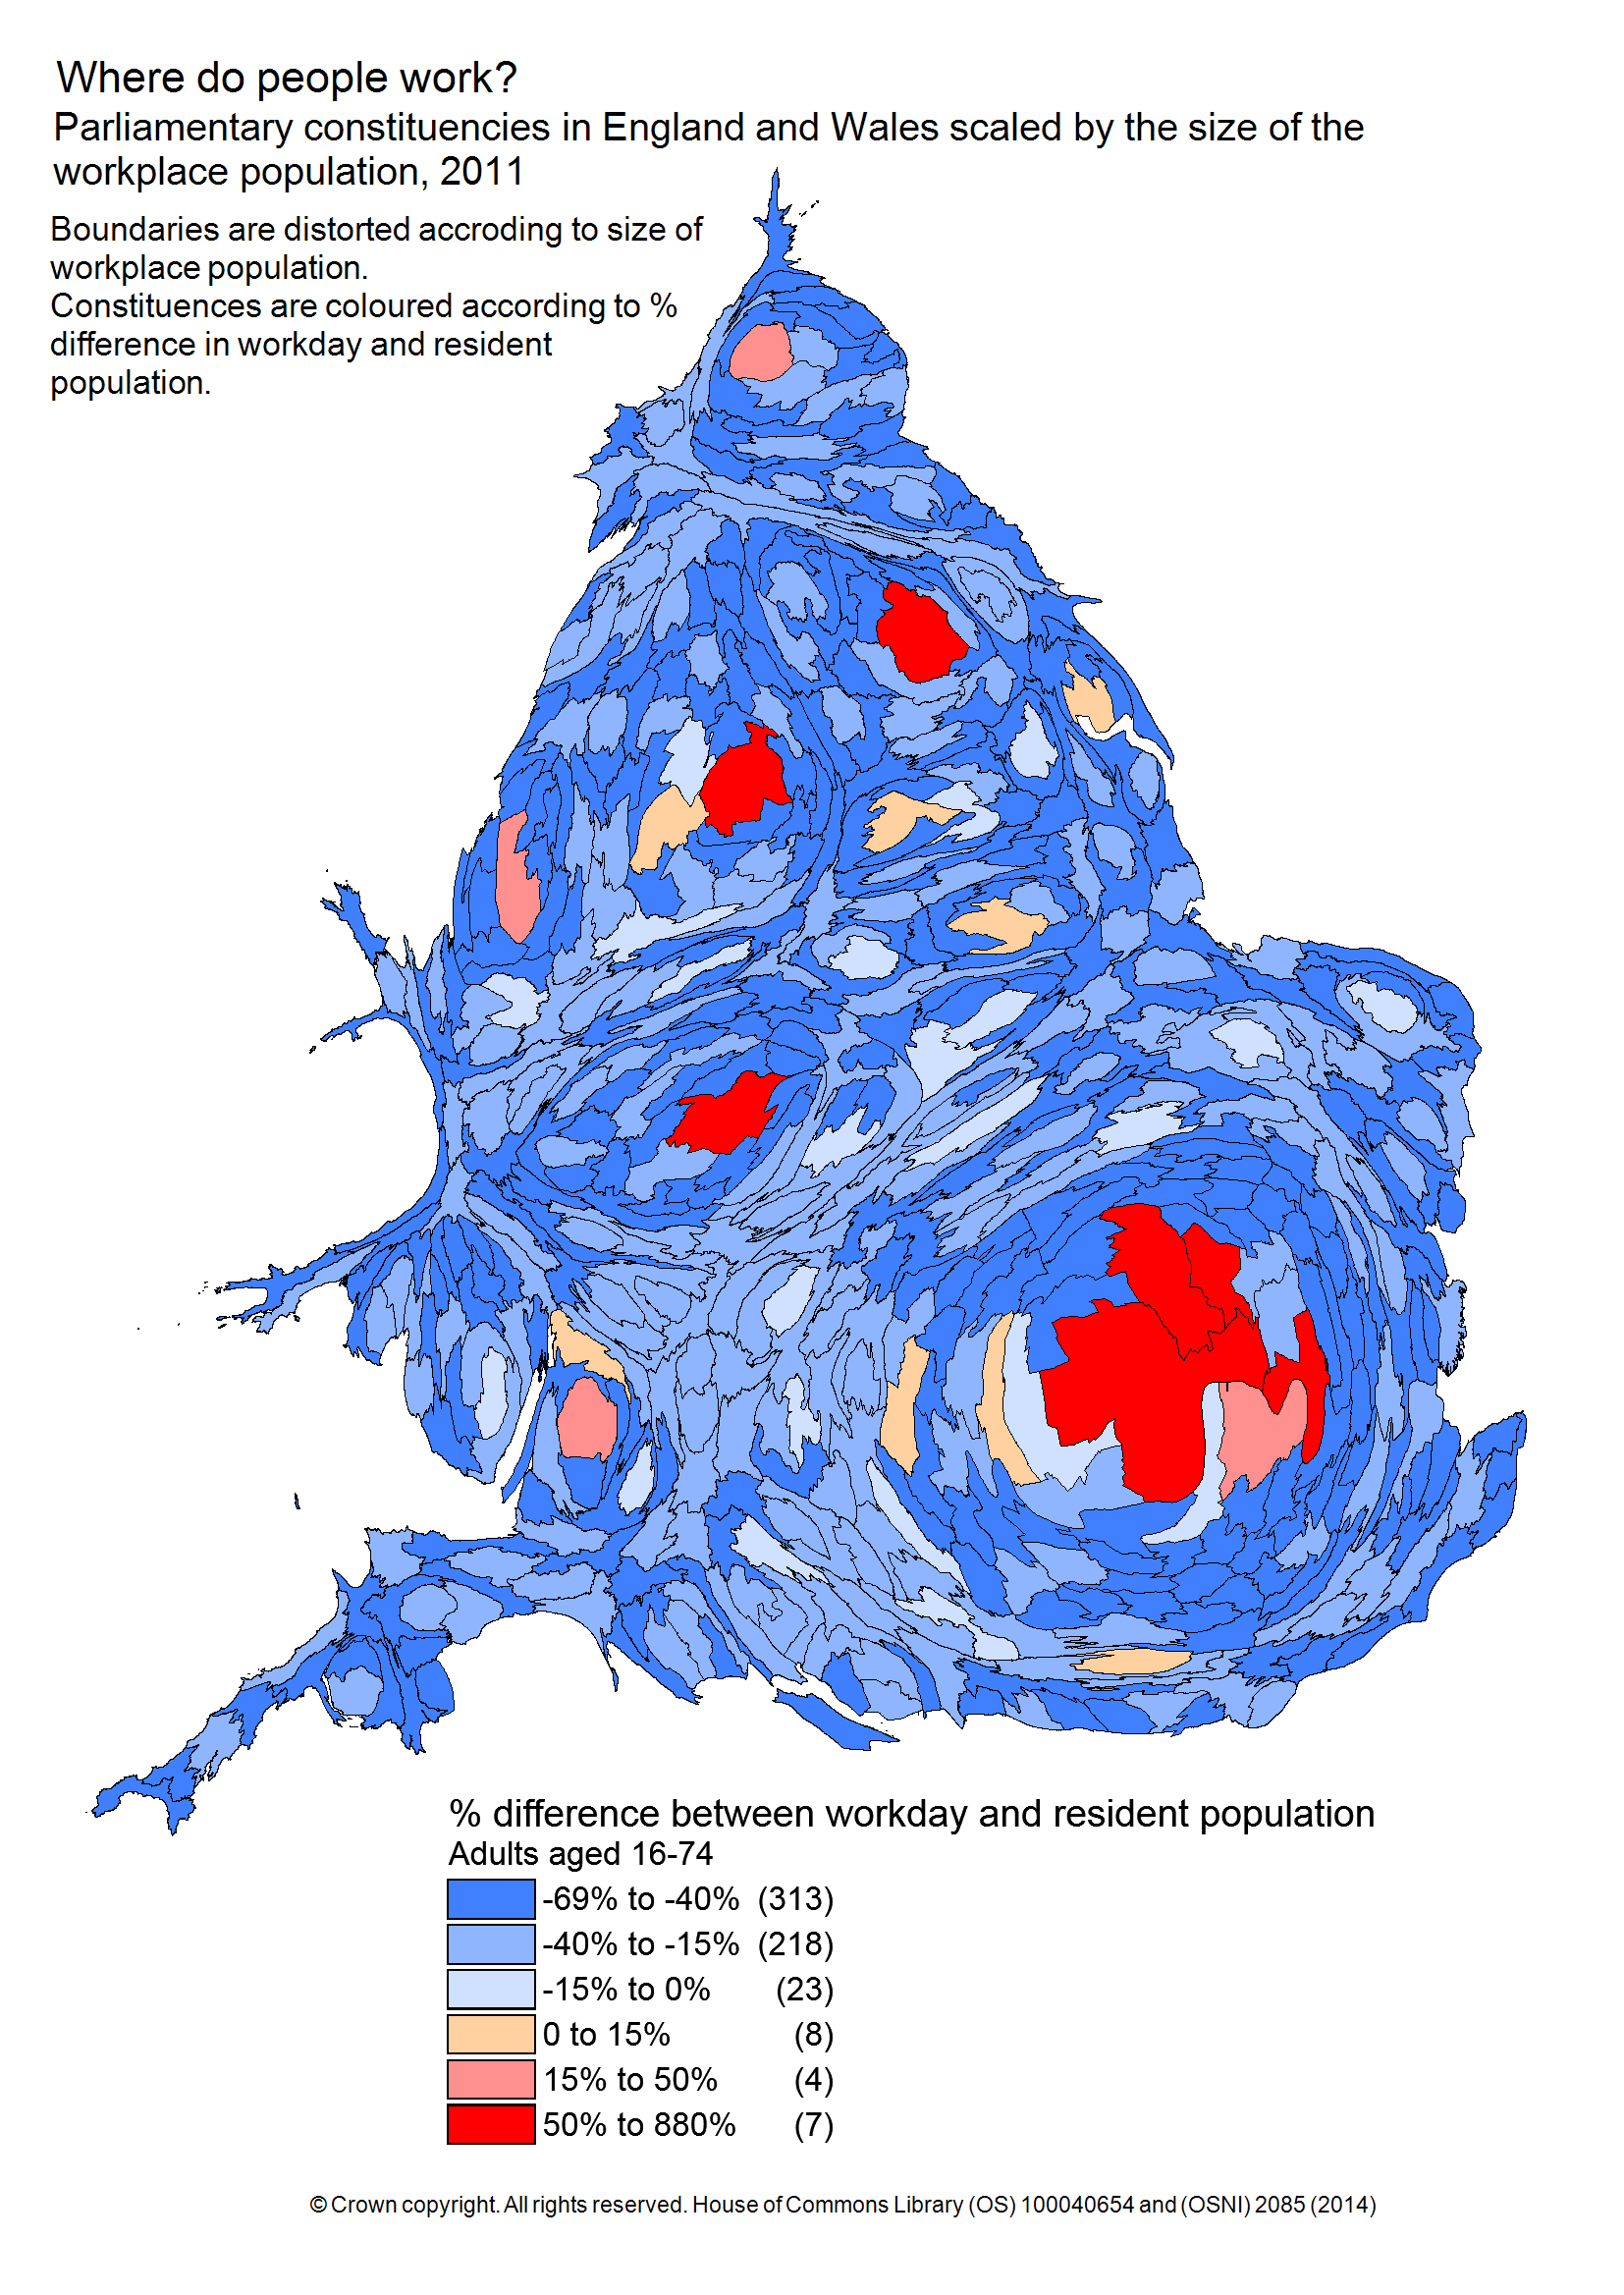 Map Of Uk Parliamentary Constituencies.Who Works In Your Constituency A New Interactive Tool For Exploring